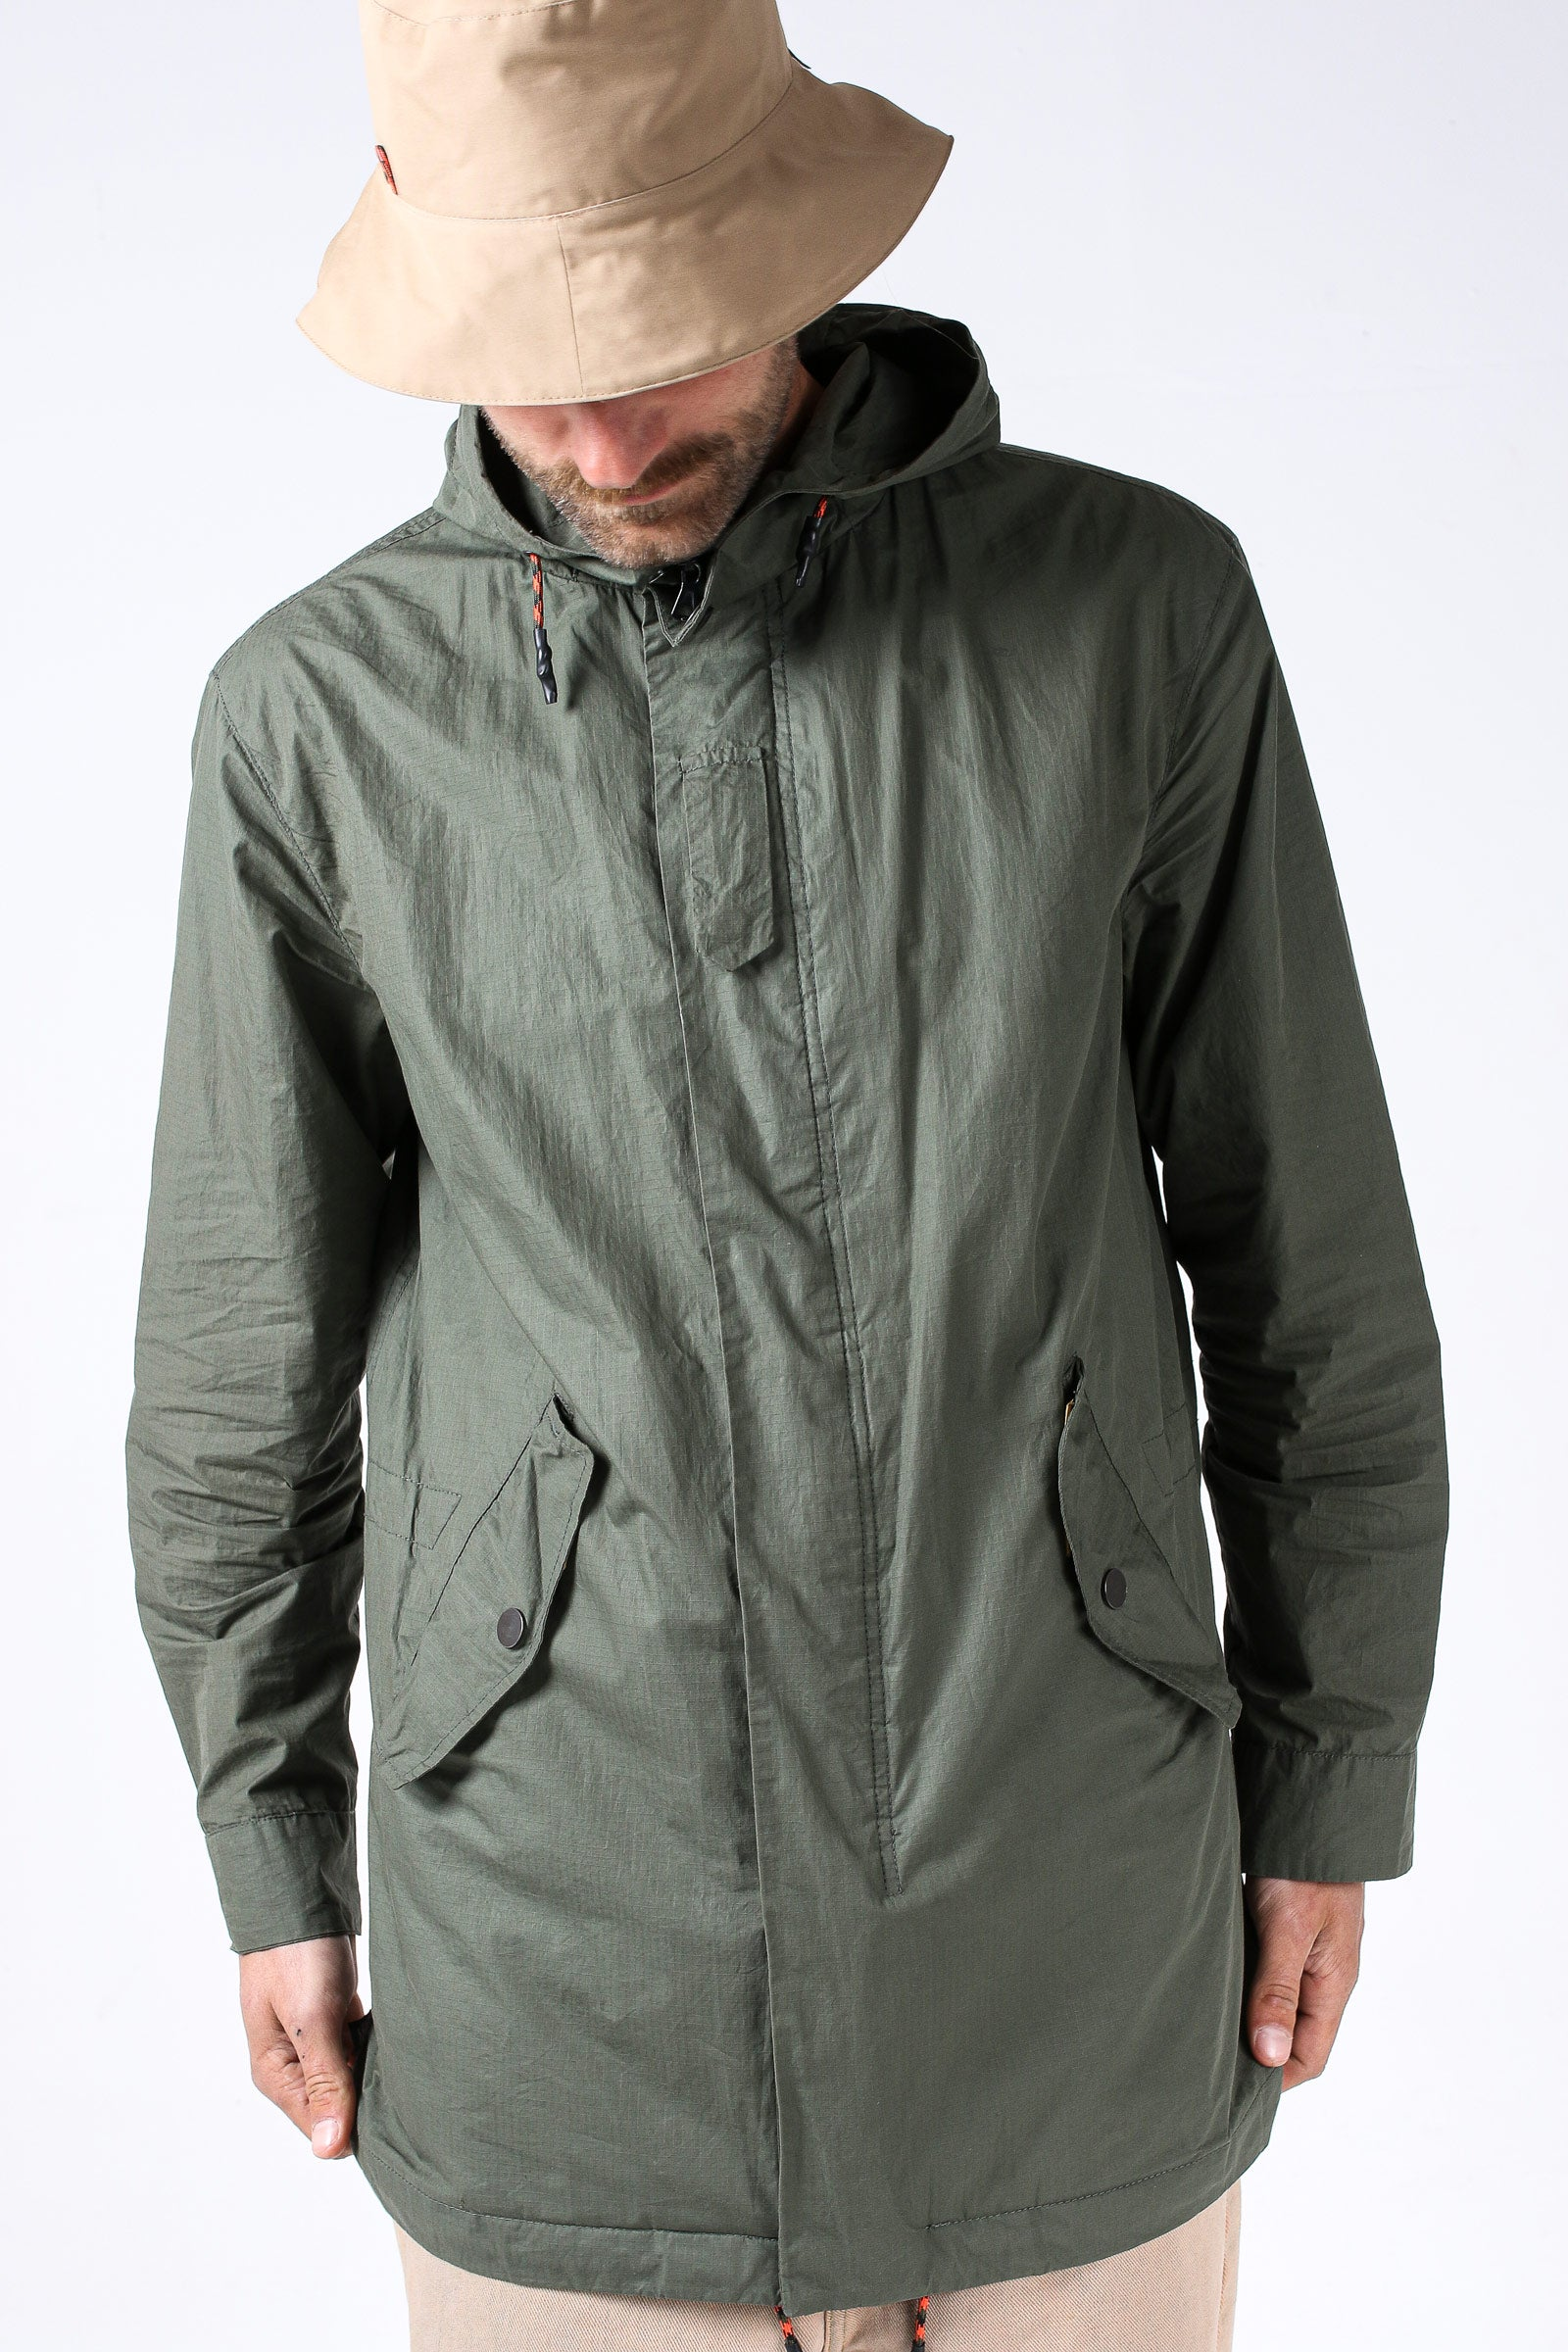 The LIGHTWEIGHT JACKET